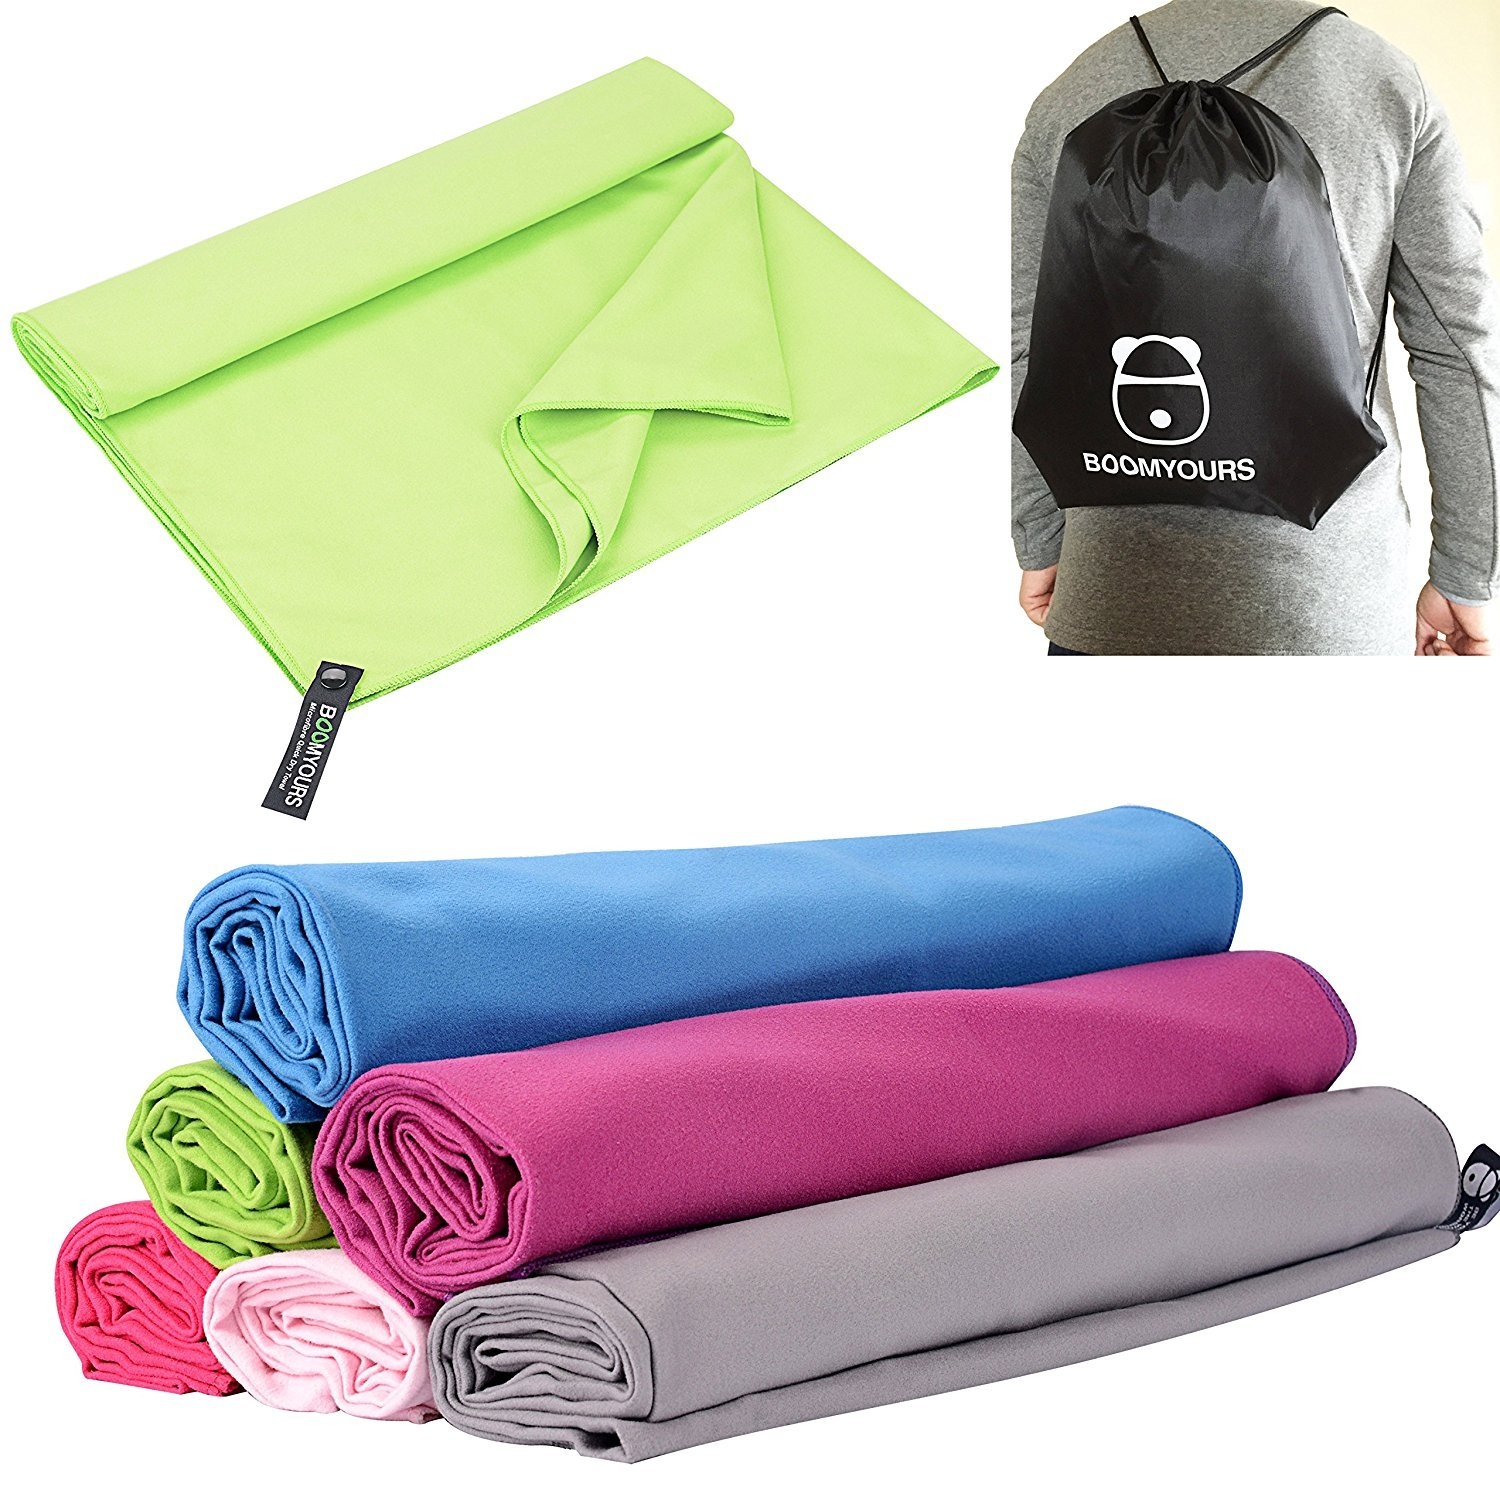 BOOMYOURS Microfibre Quick Dry Towel for Travel,Sports,Gym,Yoga,Swimming,Beach (Large/Lightweight/Highly Absorbent/Compact/Soft Microfibre)Includes FREE Sports Drawstring Bag -Green